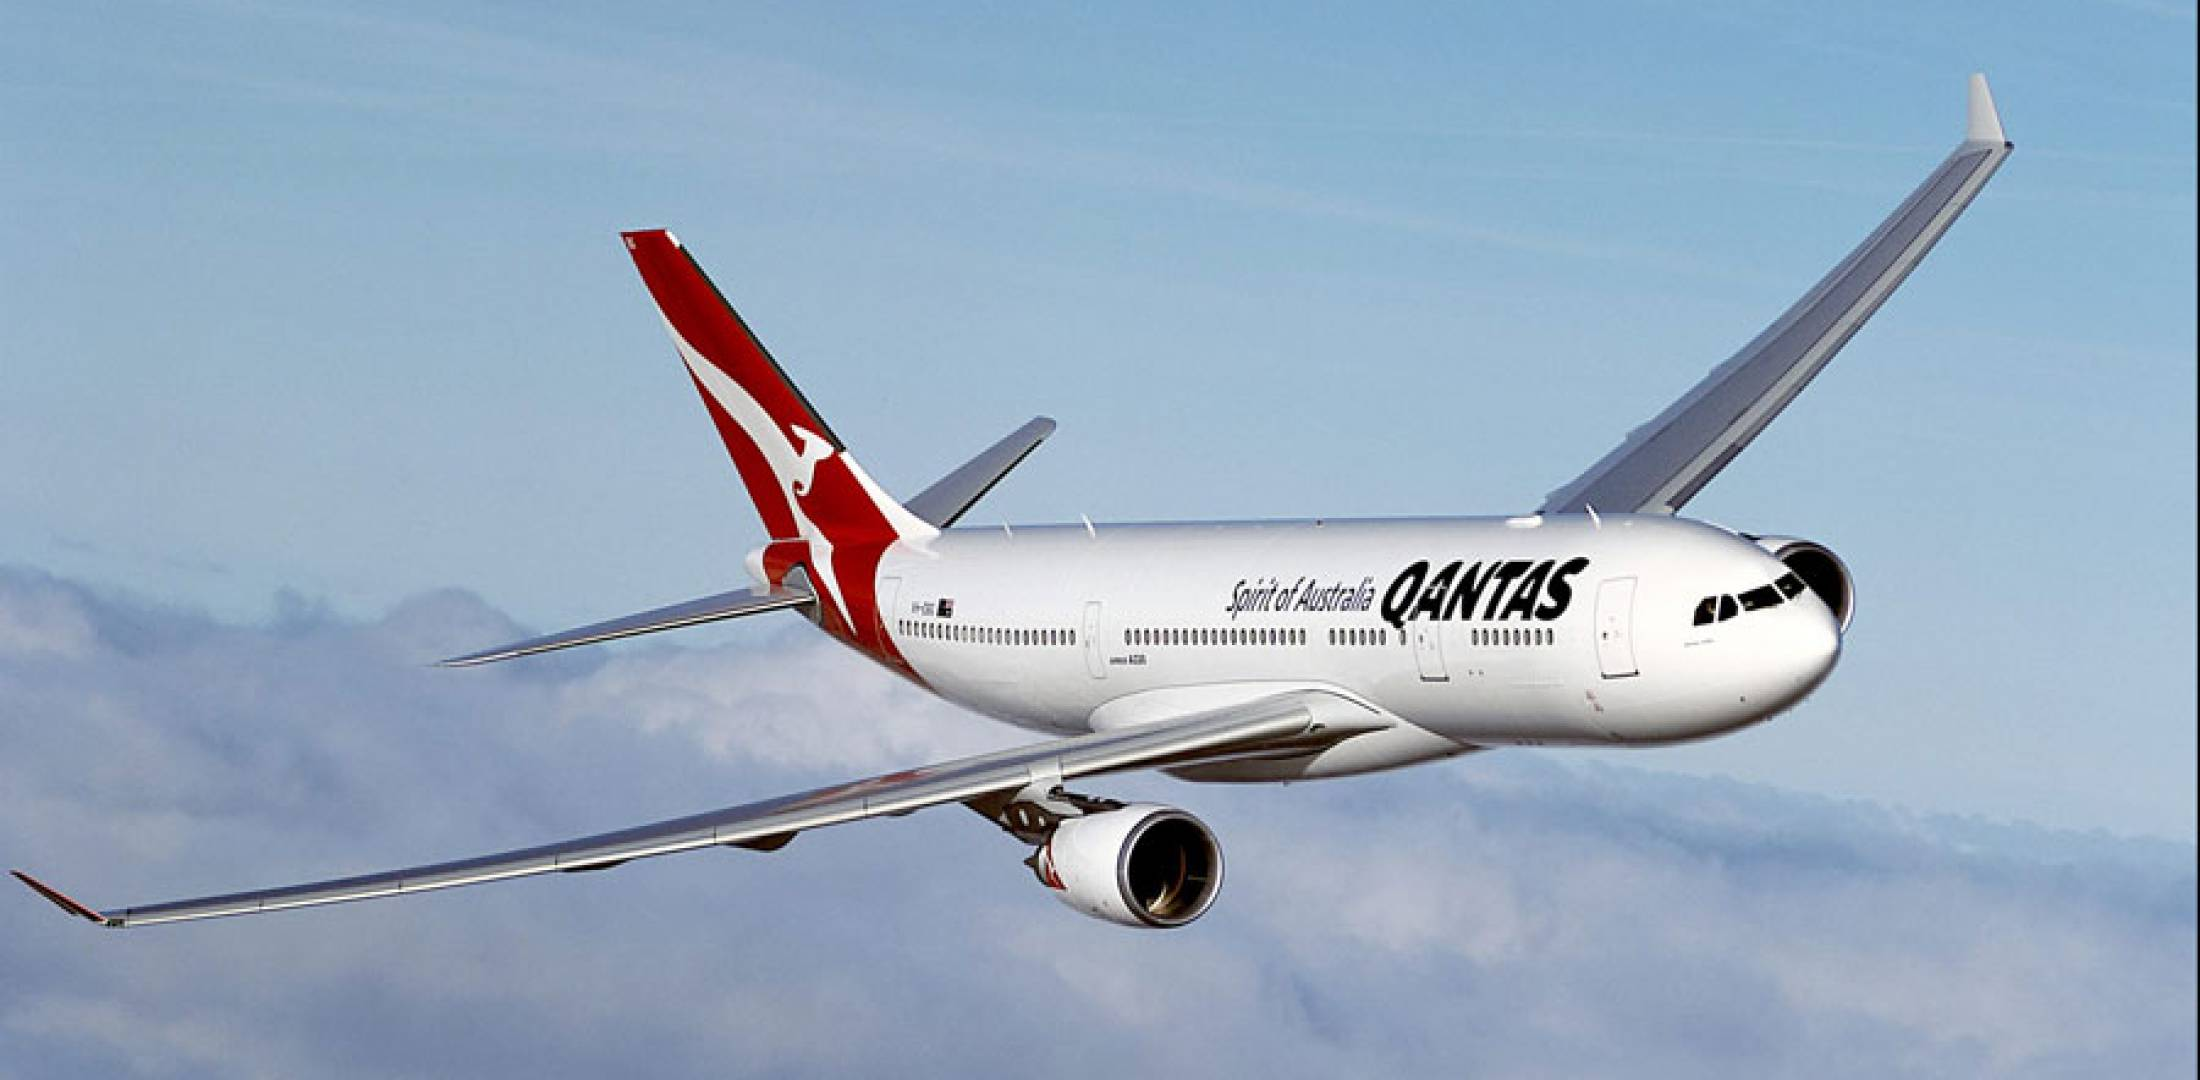 qantas general environment Fujitsu general america fujitsu with consequent benefits to the environment over the past five years qantas has virtualised its server fleet with the benefits.